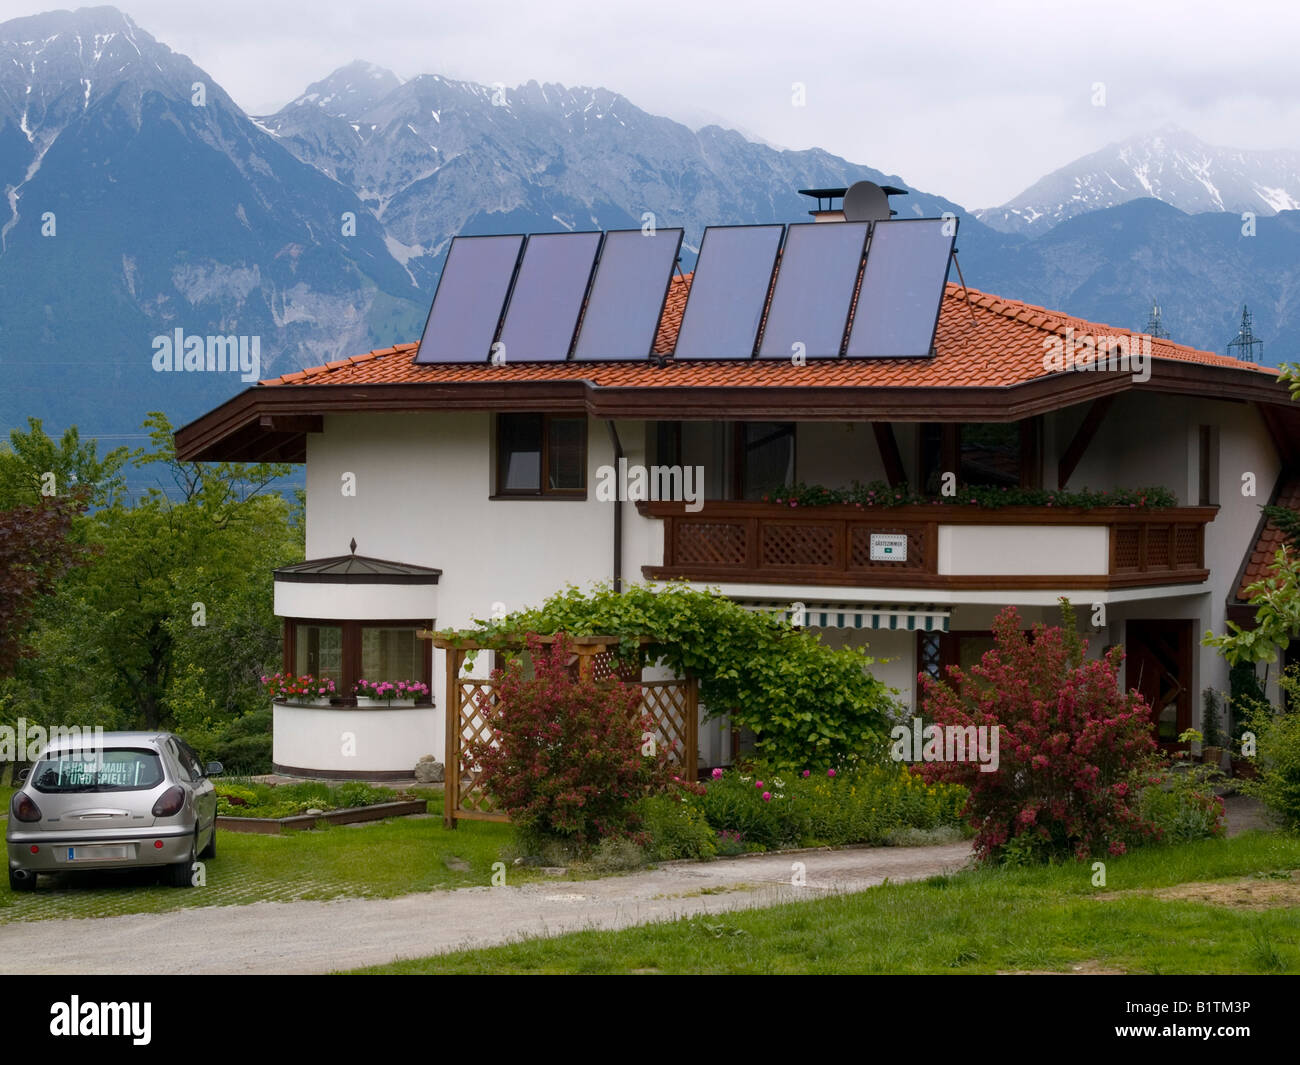 A house fitted with an array of solar panels for water heating in Lans Innsbruck Austria - Stock Image